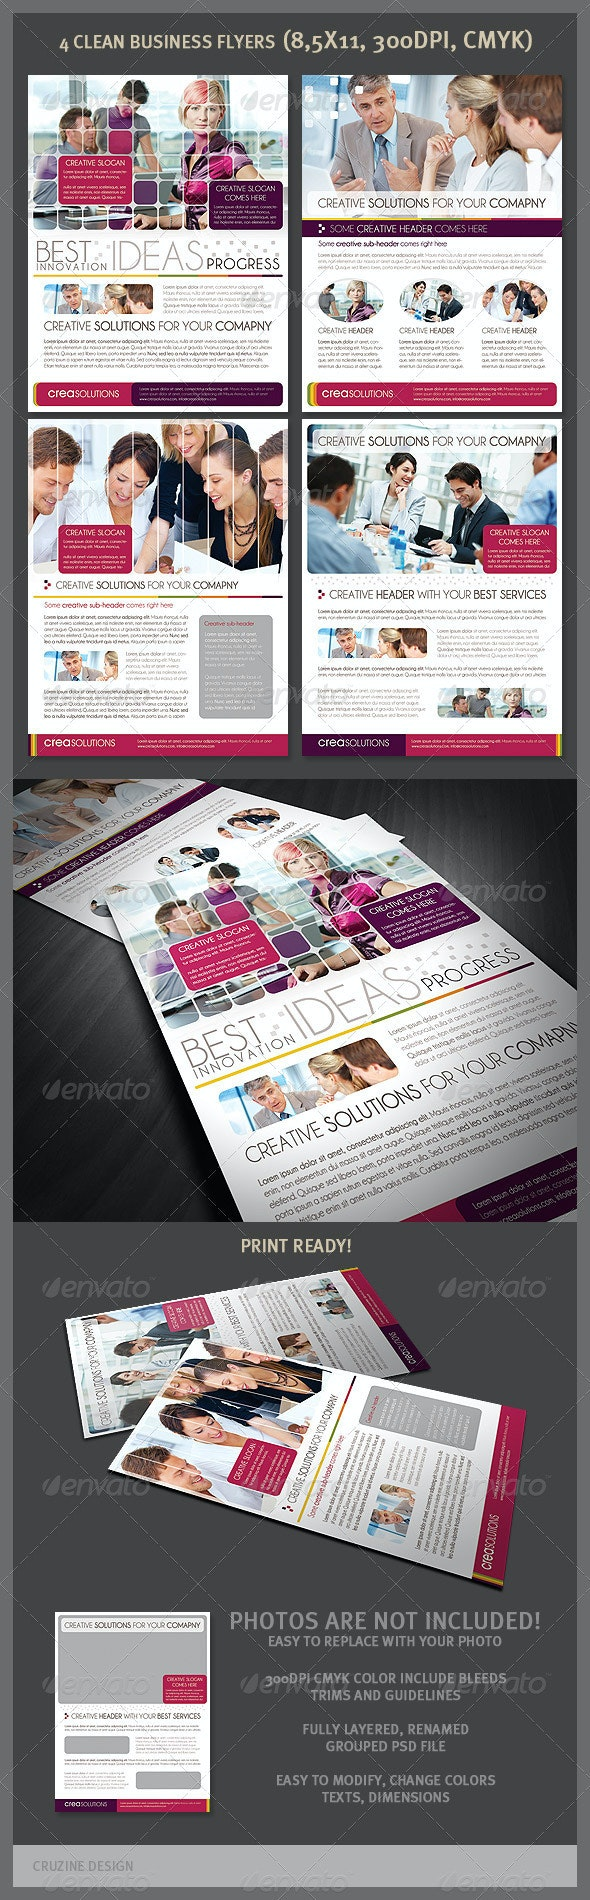 4 Clean Business Flyers - Corporate Flyers